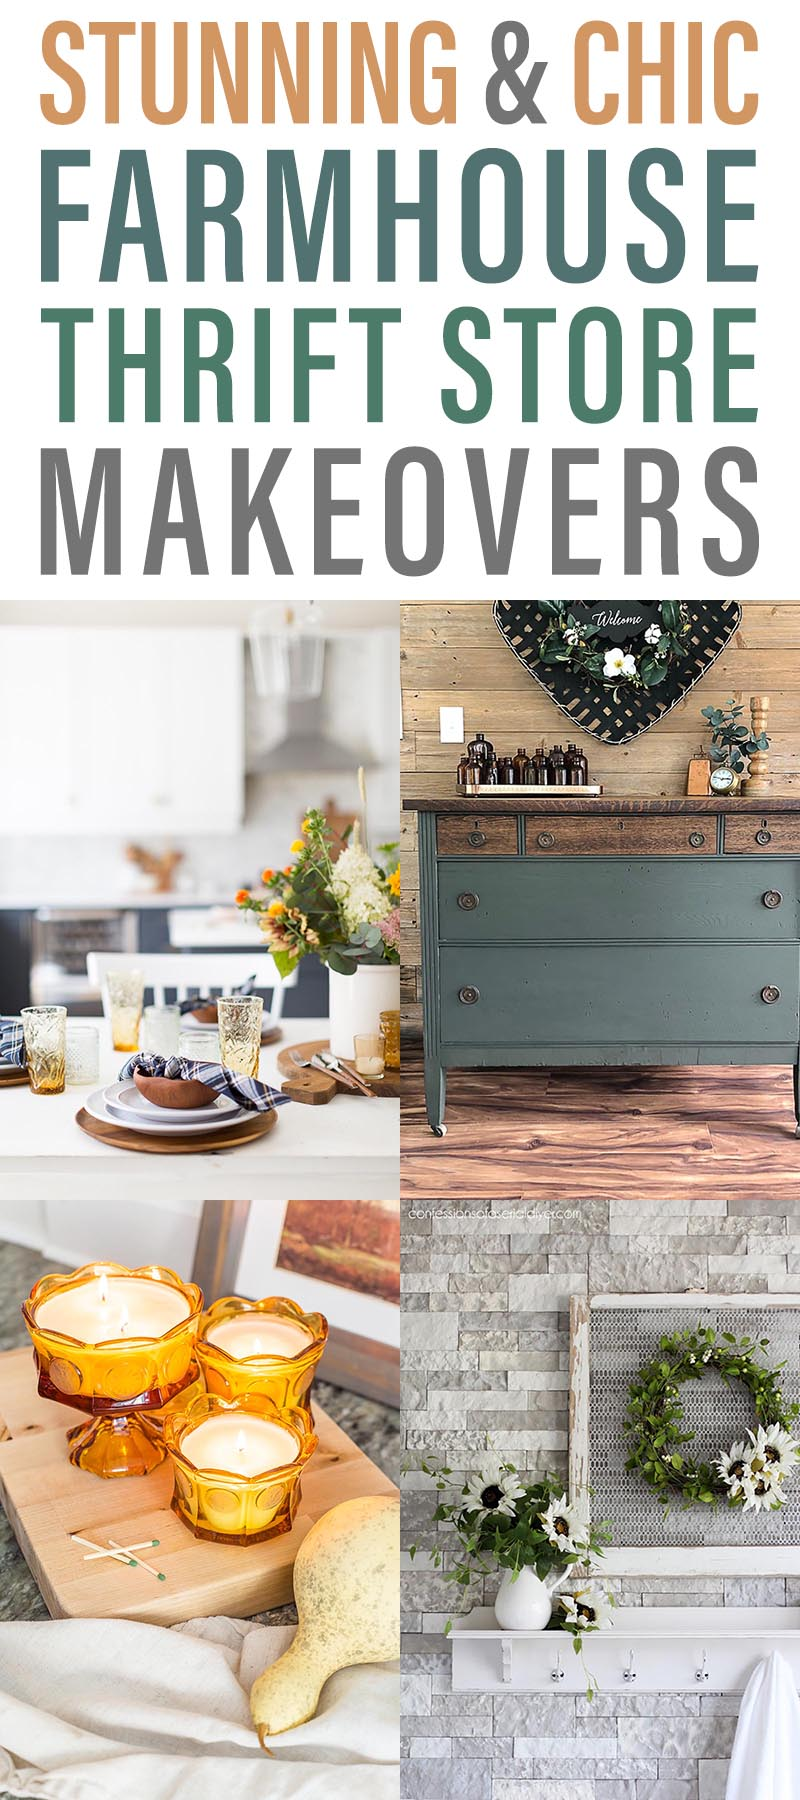 Stunning and Chic Farmhouse Thrift Store Makeovers are going to Inspired you to create your own original diy project that will be amazing!